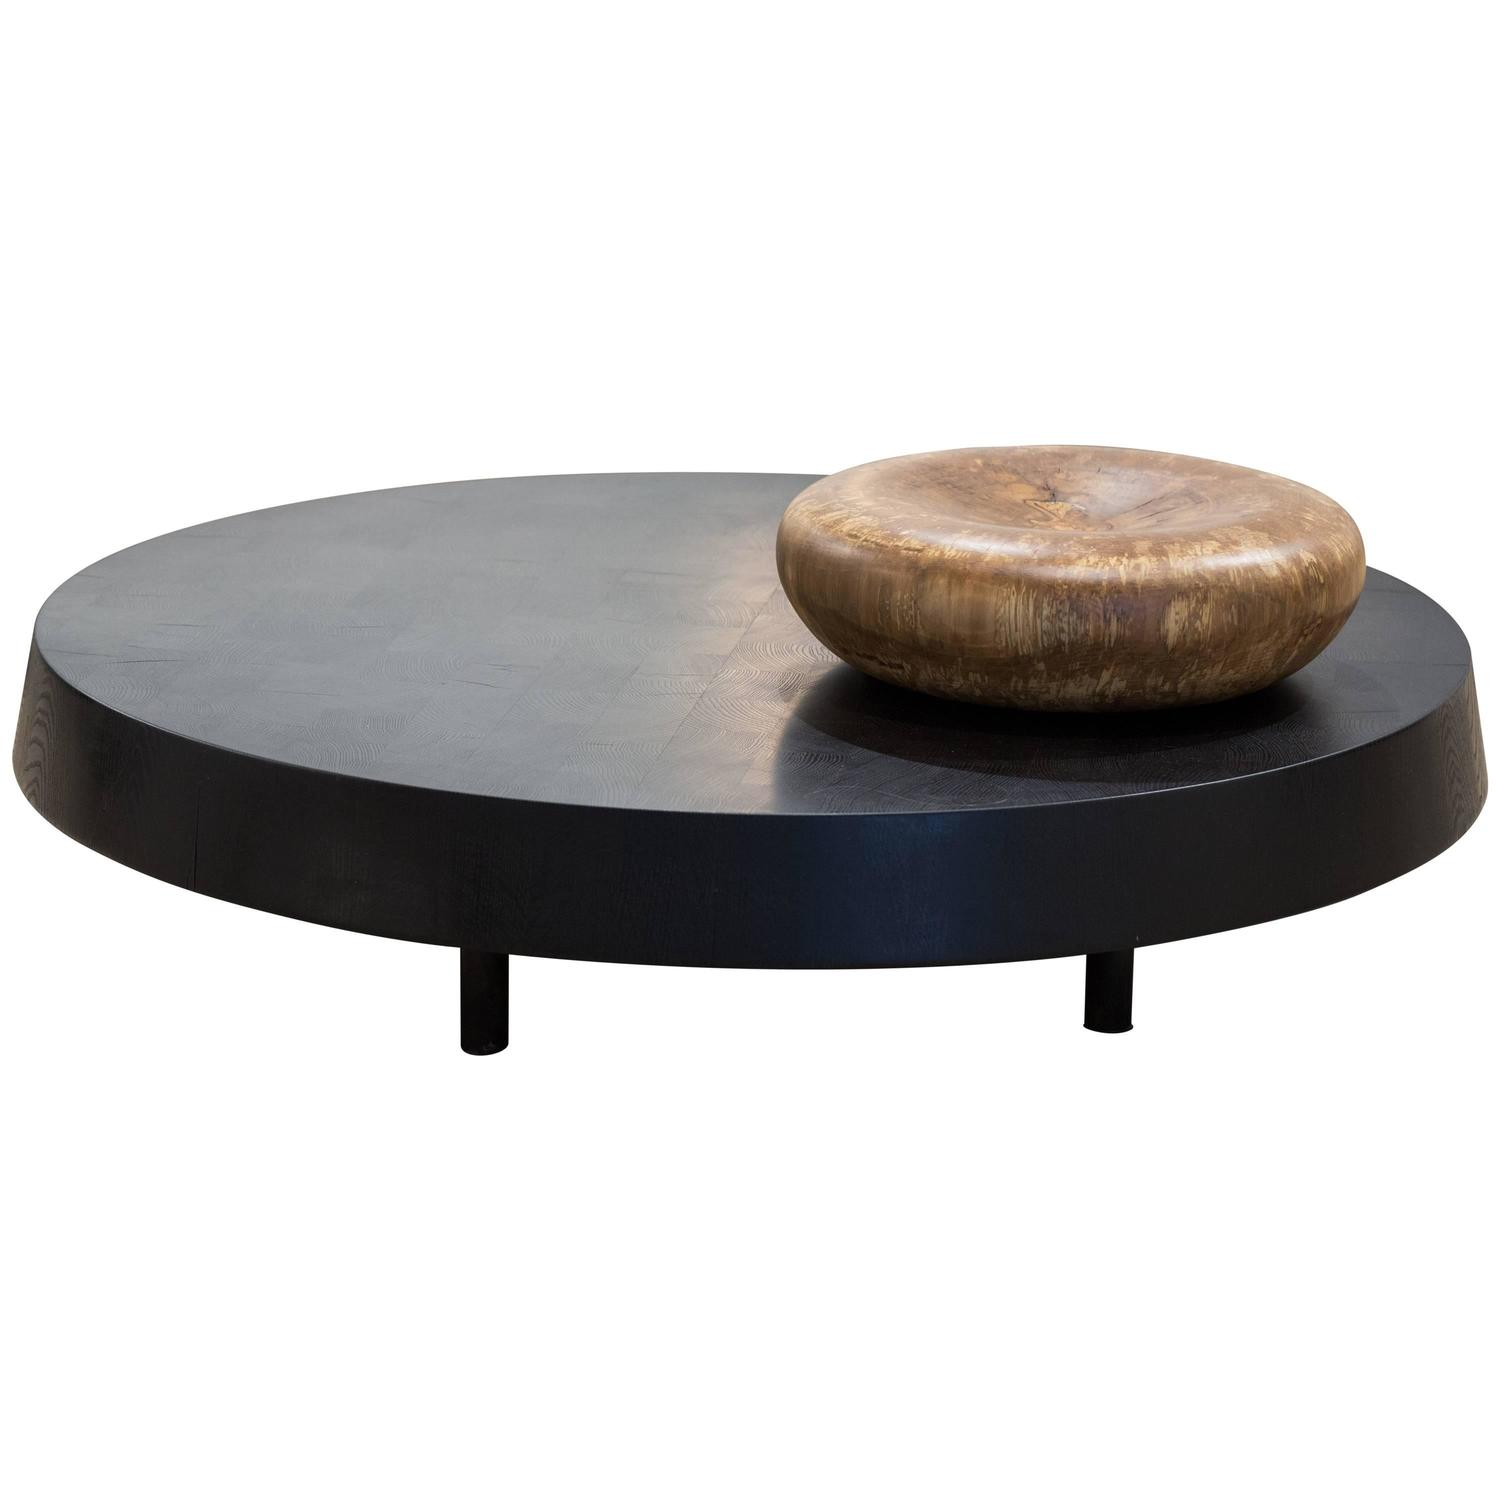 Floating Block Table by Blackcreek Mercantile and Trading Co in